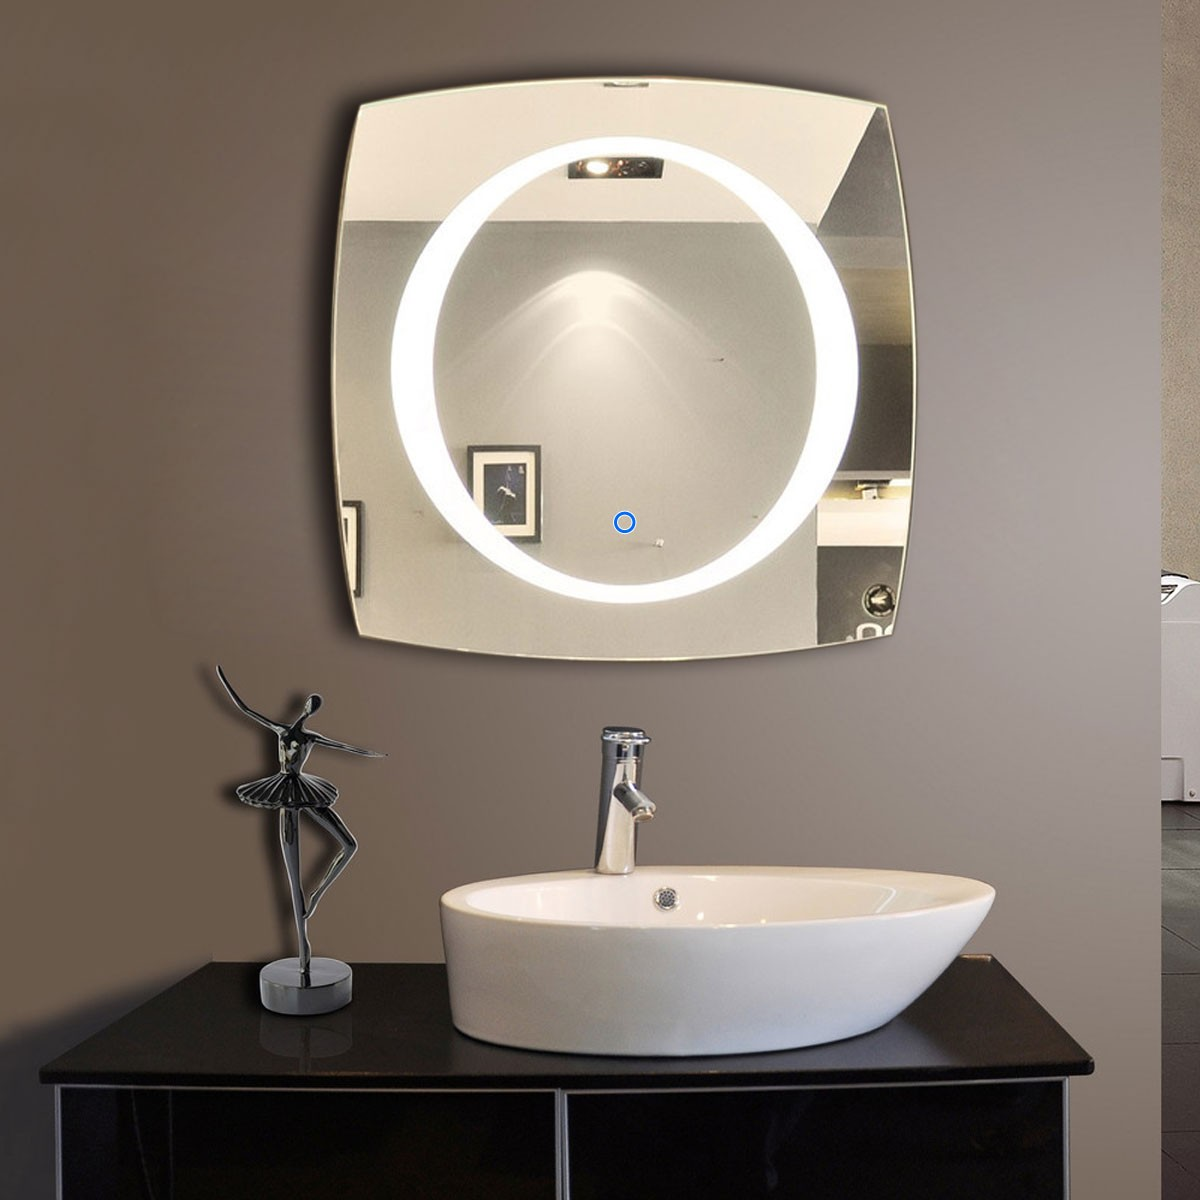 Decoraport square bathroom mirror wall mounted illuminated backlit bathroom vanity mirror with touch button frameless lighted makeup mirror 28 x 28 inch